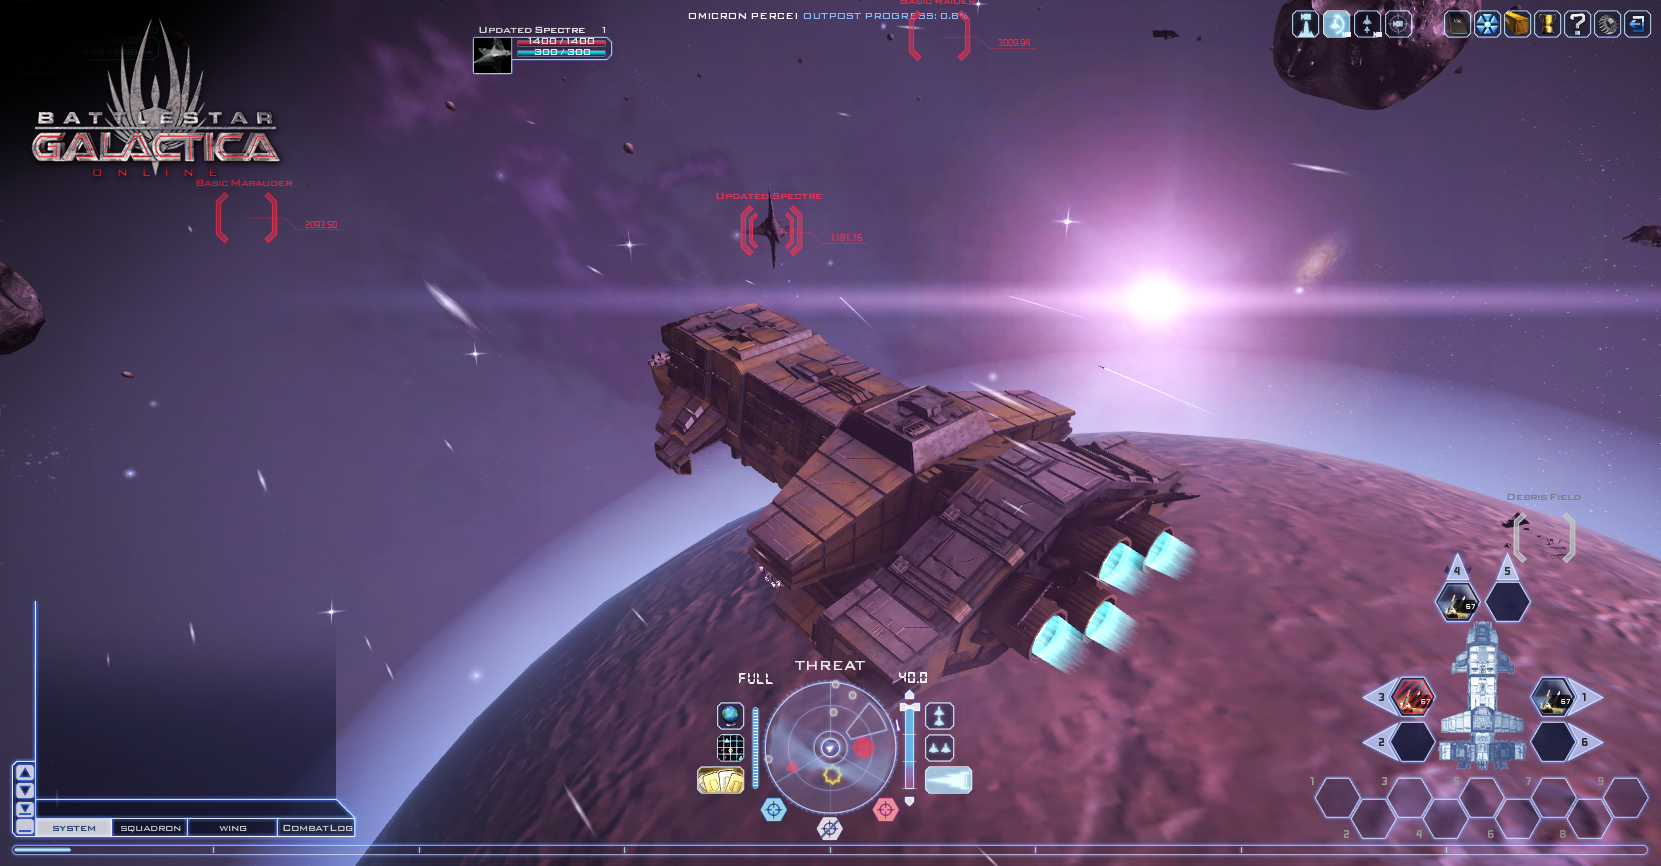 Battlestar Galactica Online 1.0 Screenshot